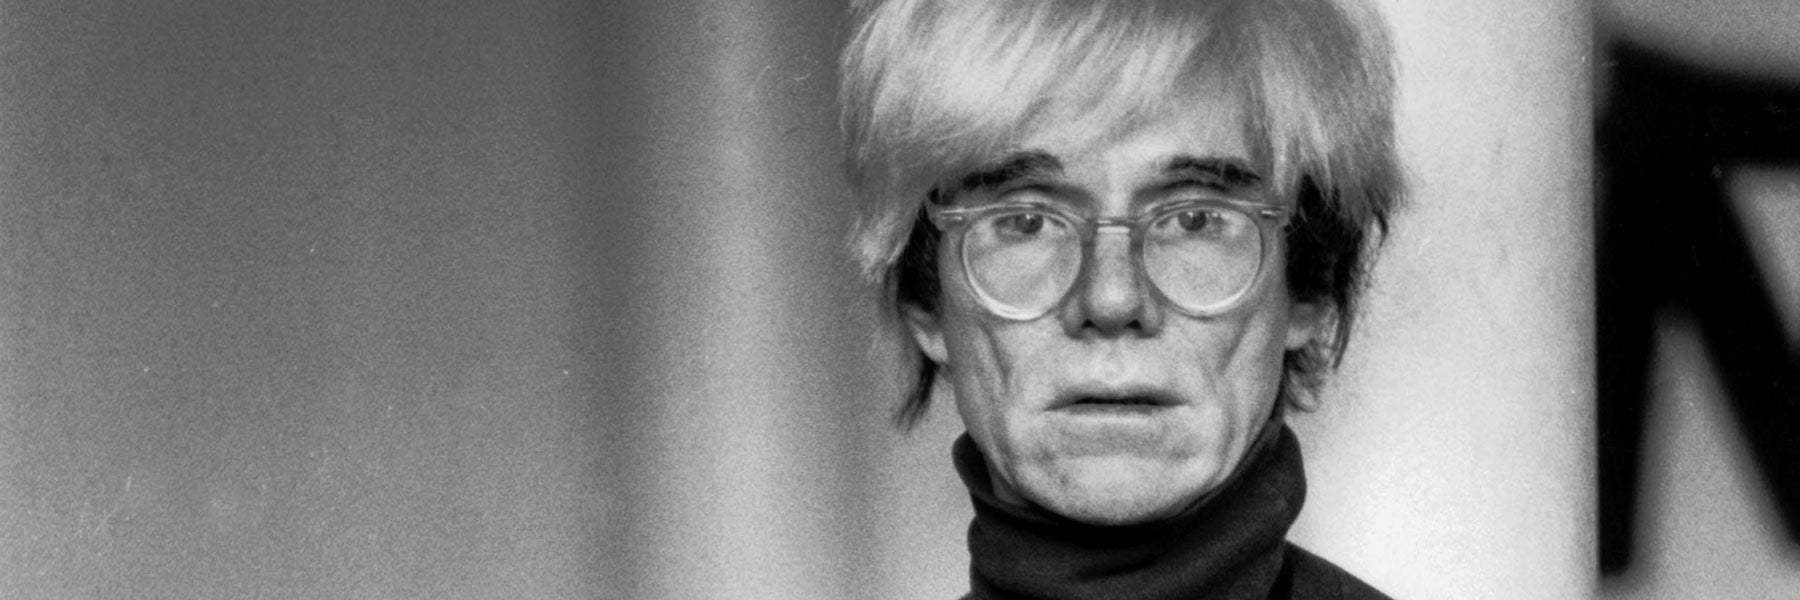 Andy Warhol an eyewear icon